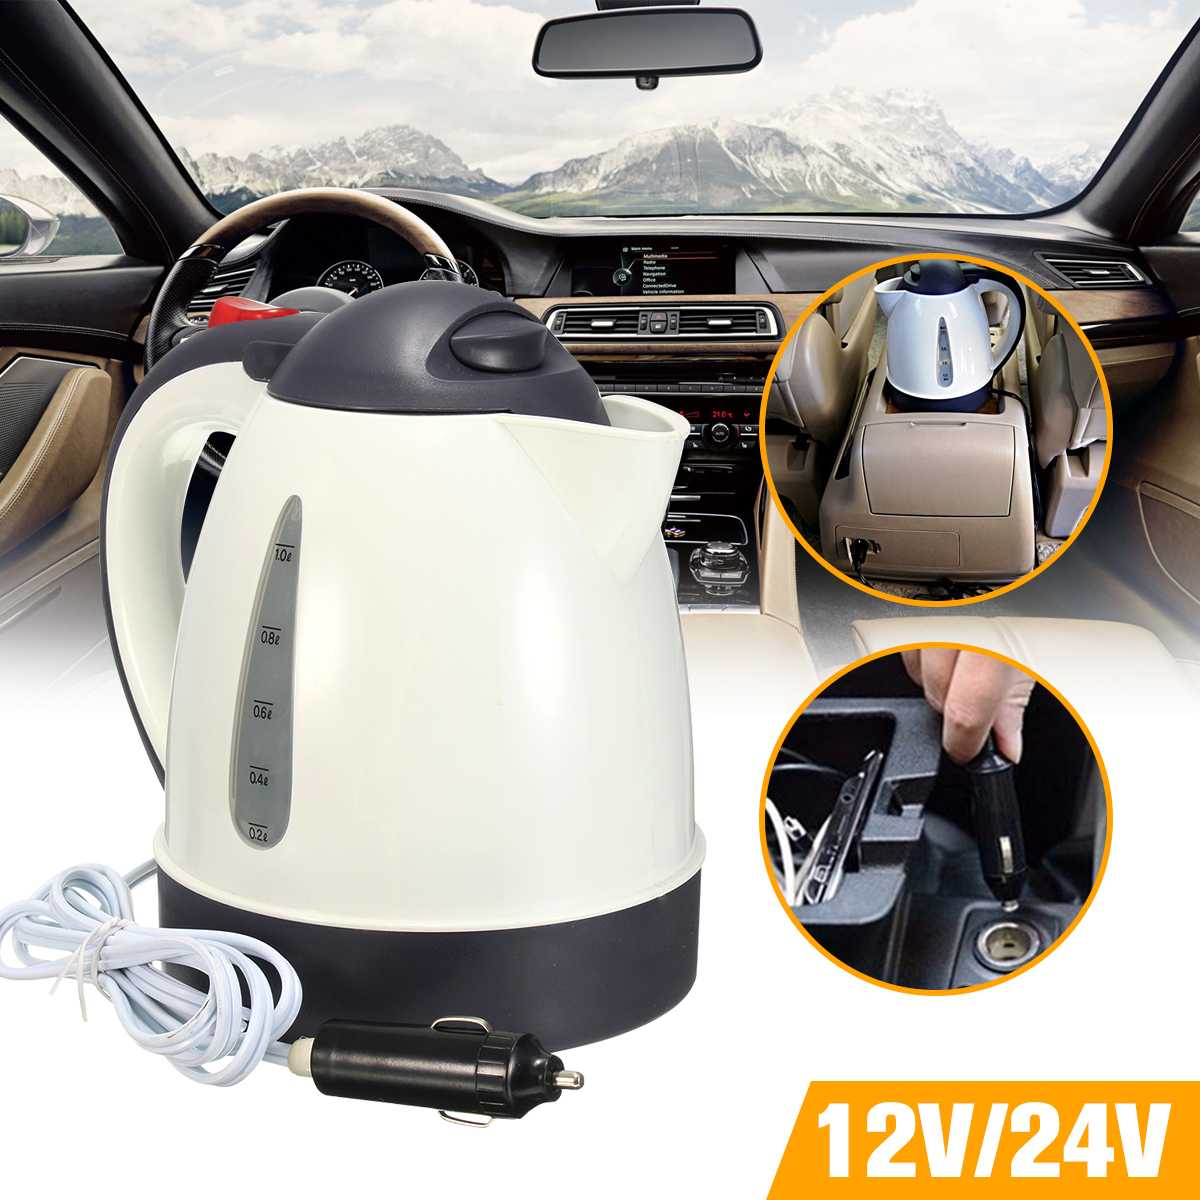 1000ml 304 Stainless Steel Car Kettle Portable Auto Car Water Heater Warmer Travel Mains Kettle 12V/24V For Coffee Hot Tea